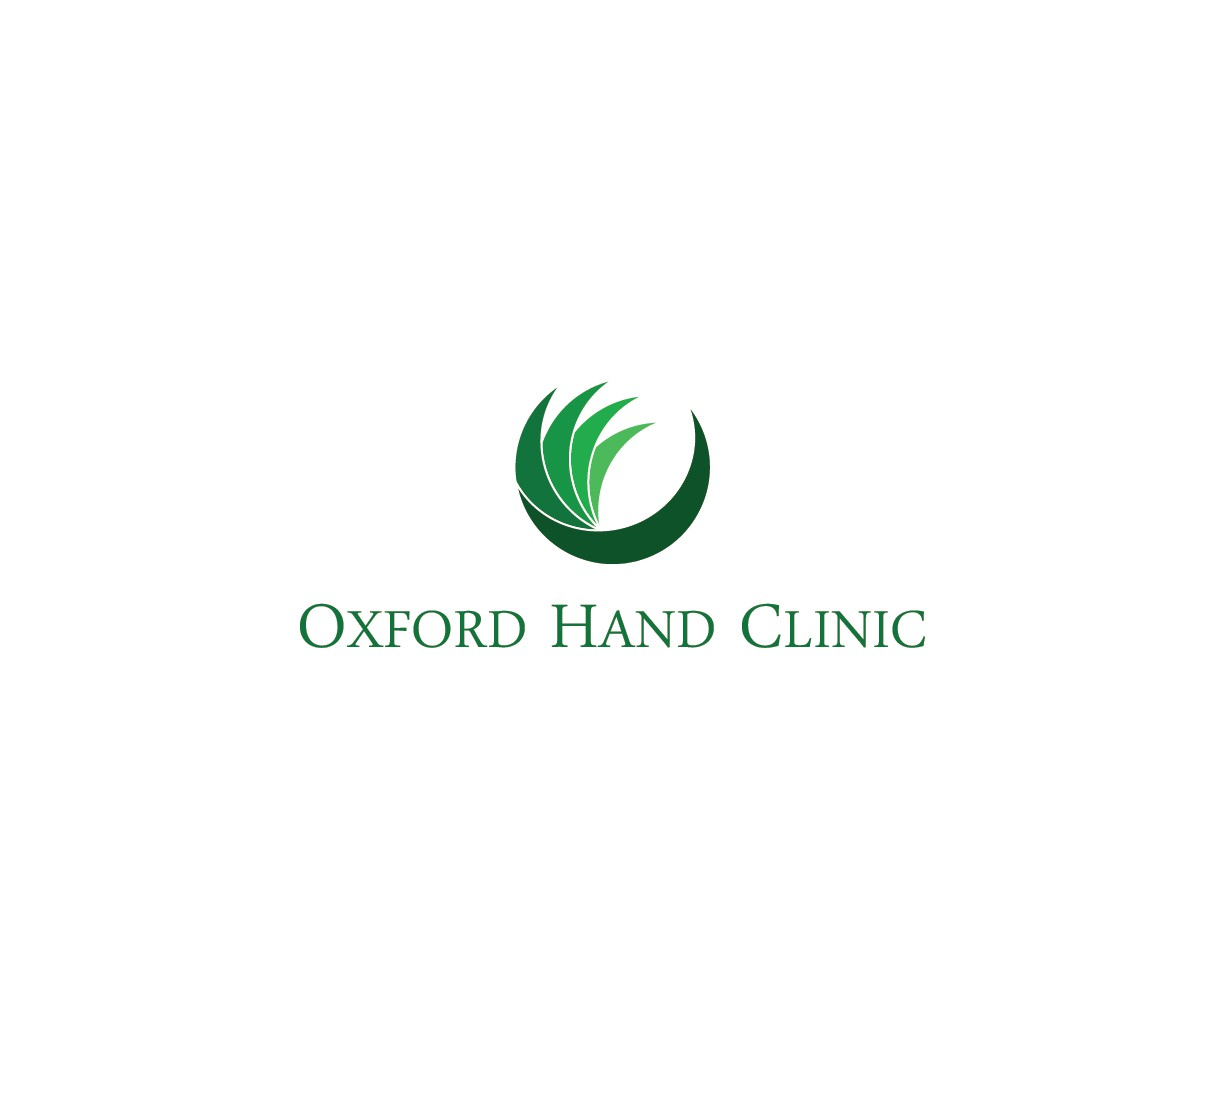 Create a logo for a new hand therapy clinic located in a thriving college town